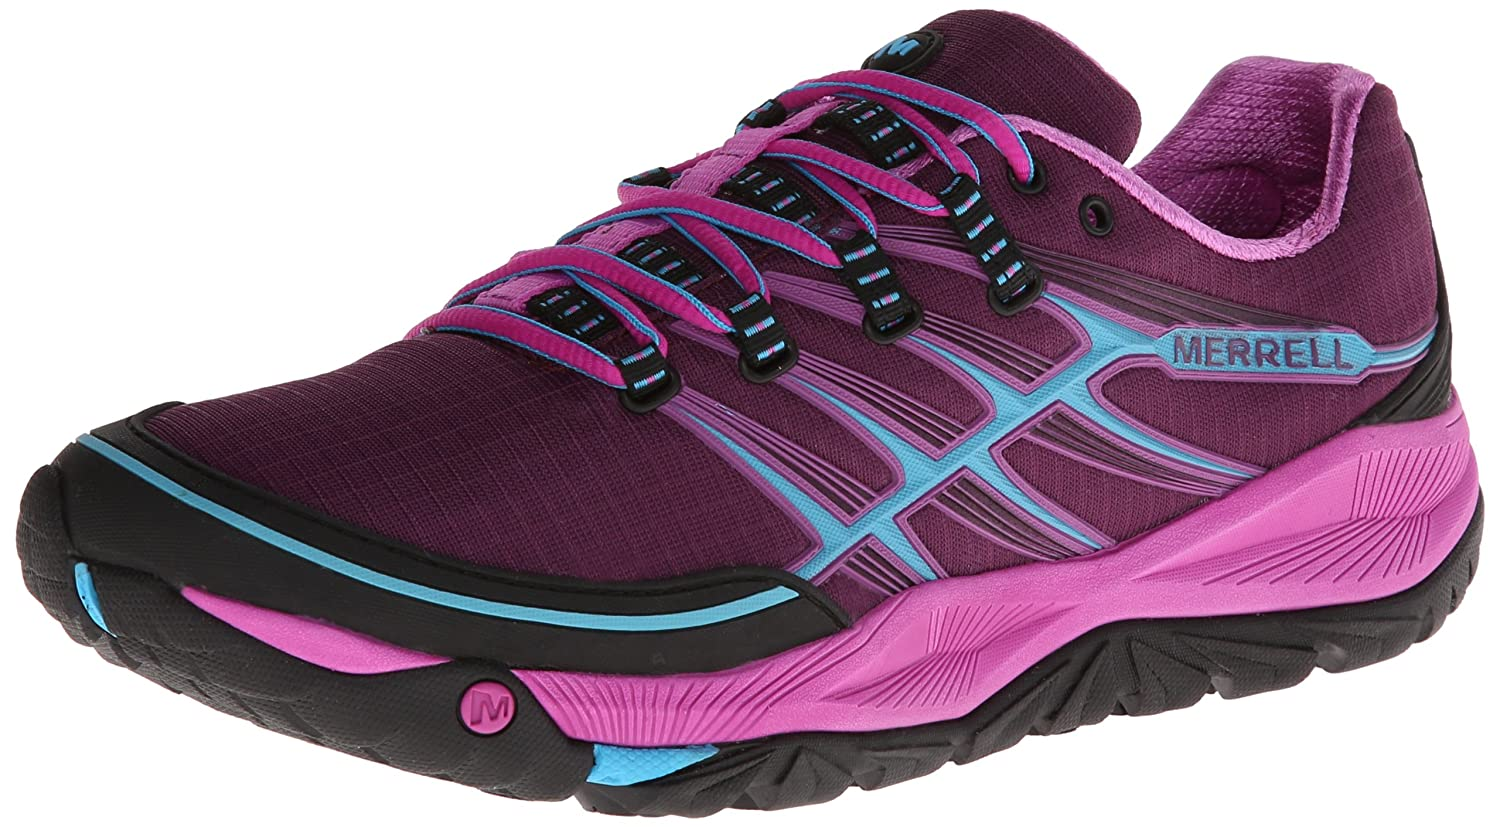 Merrell Women's All Out Rush Trail Running Shoe B00D1PDS00 6 B(M) US|Purple/Horizon Blue